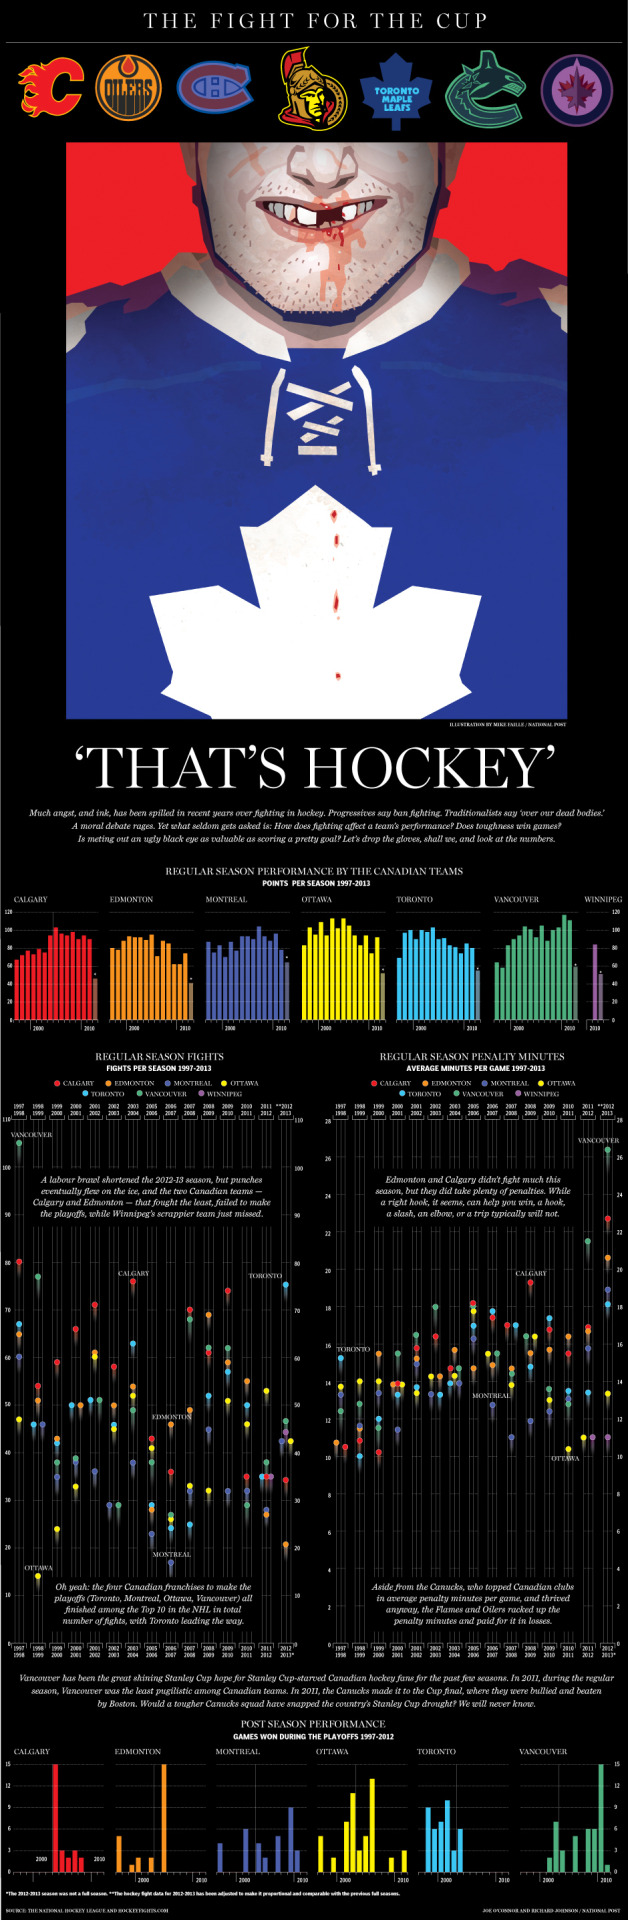 nationalpostsports:  Infographic: The fight for the Stanley CupMuch angst, and ink, has been spilled in recent years over fighting in hockey. Progressives say ban fighting. Traditionalists say 'over our dead bodies.' A moral debate rages. Yet what seldom gets asked is: How does fighting affect a team's performance? Does toughness win games? Is meting out an ugly black eye as valuable as scoring a pretty goal? Let's drop the gloves, shall we, and look at the numbers. (Illustration by Mike Faille)